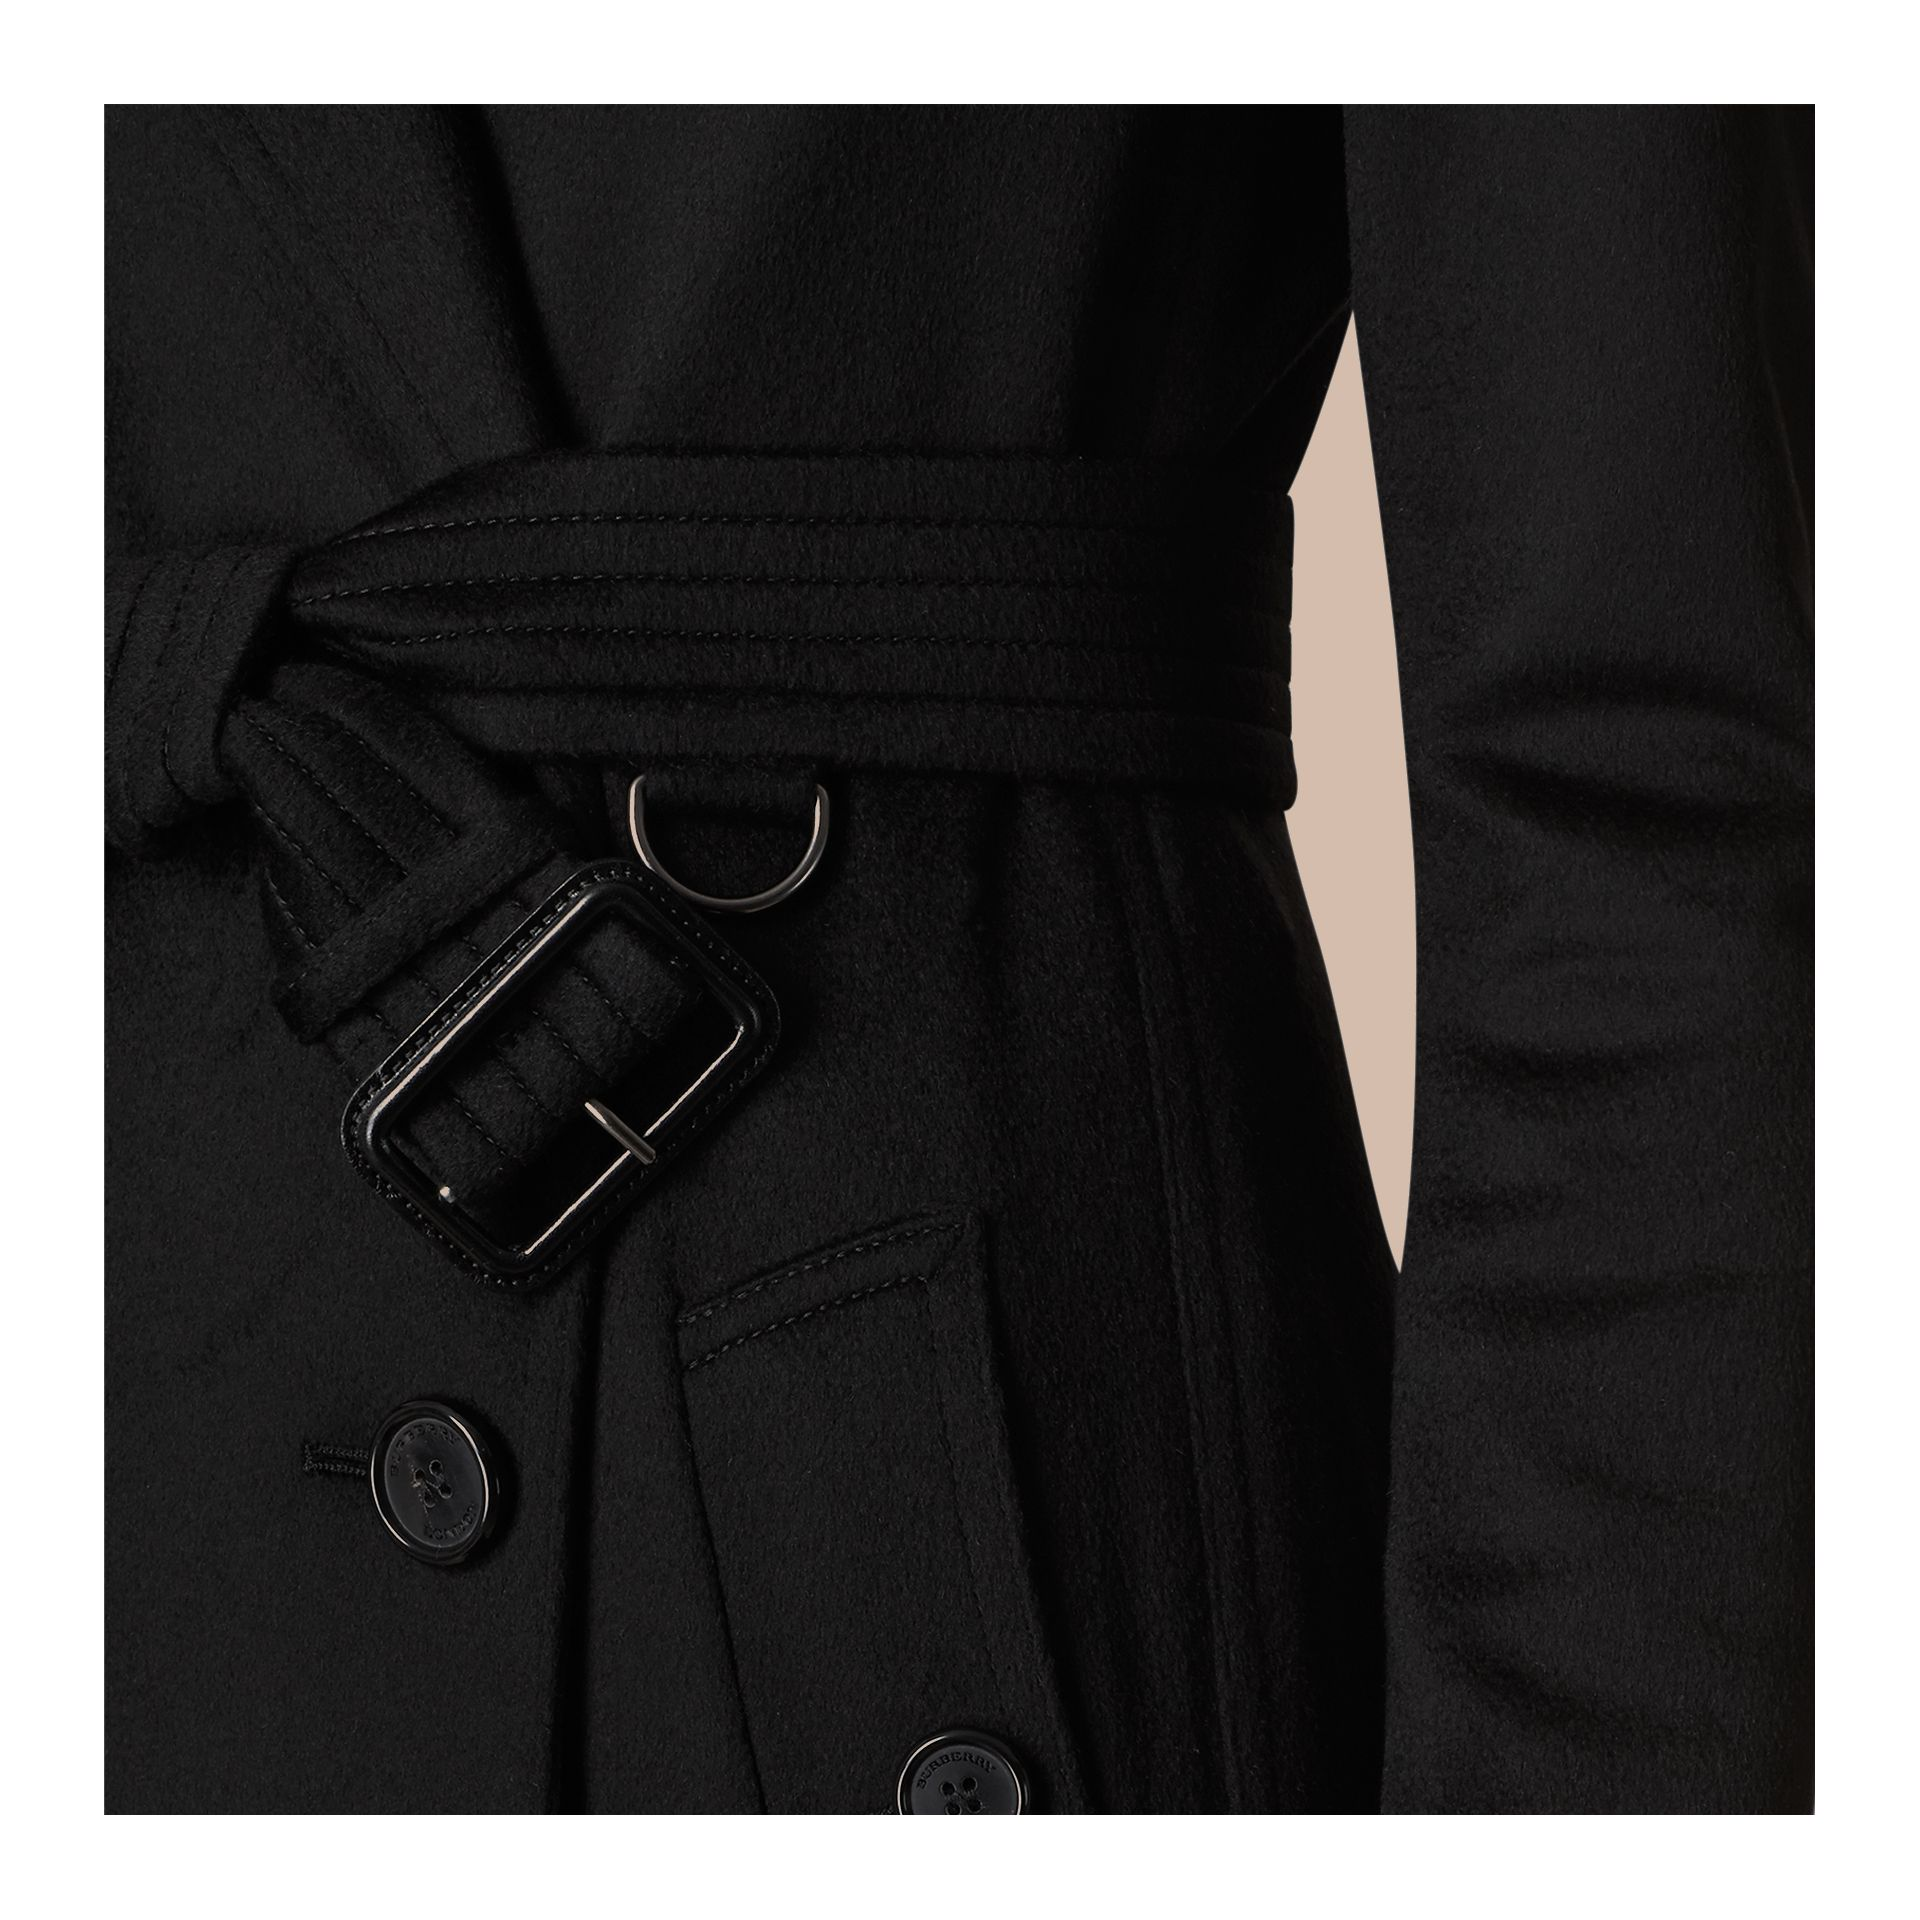 Noir Trench-coat en cachemire de coupe Kensington Noir - photo de la galerie 2